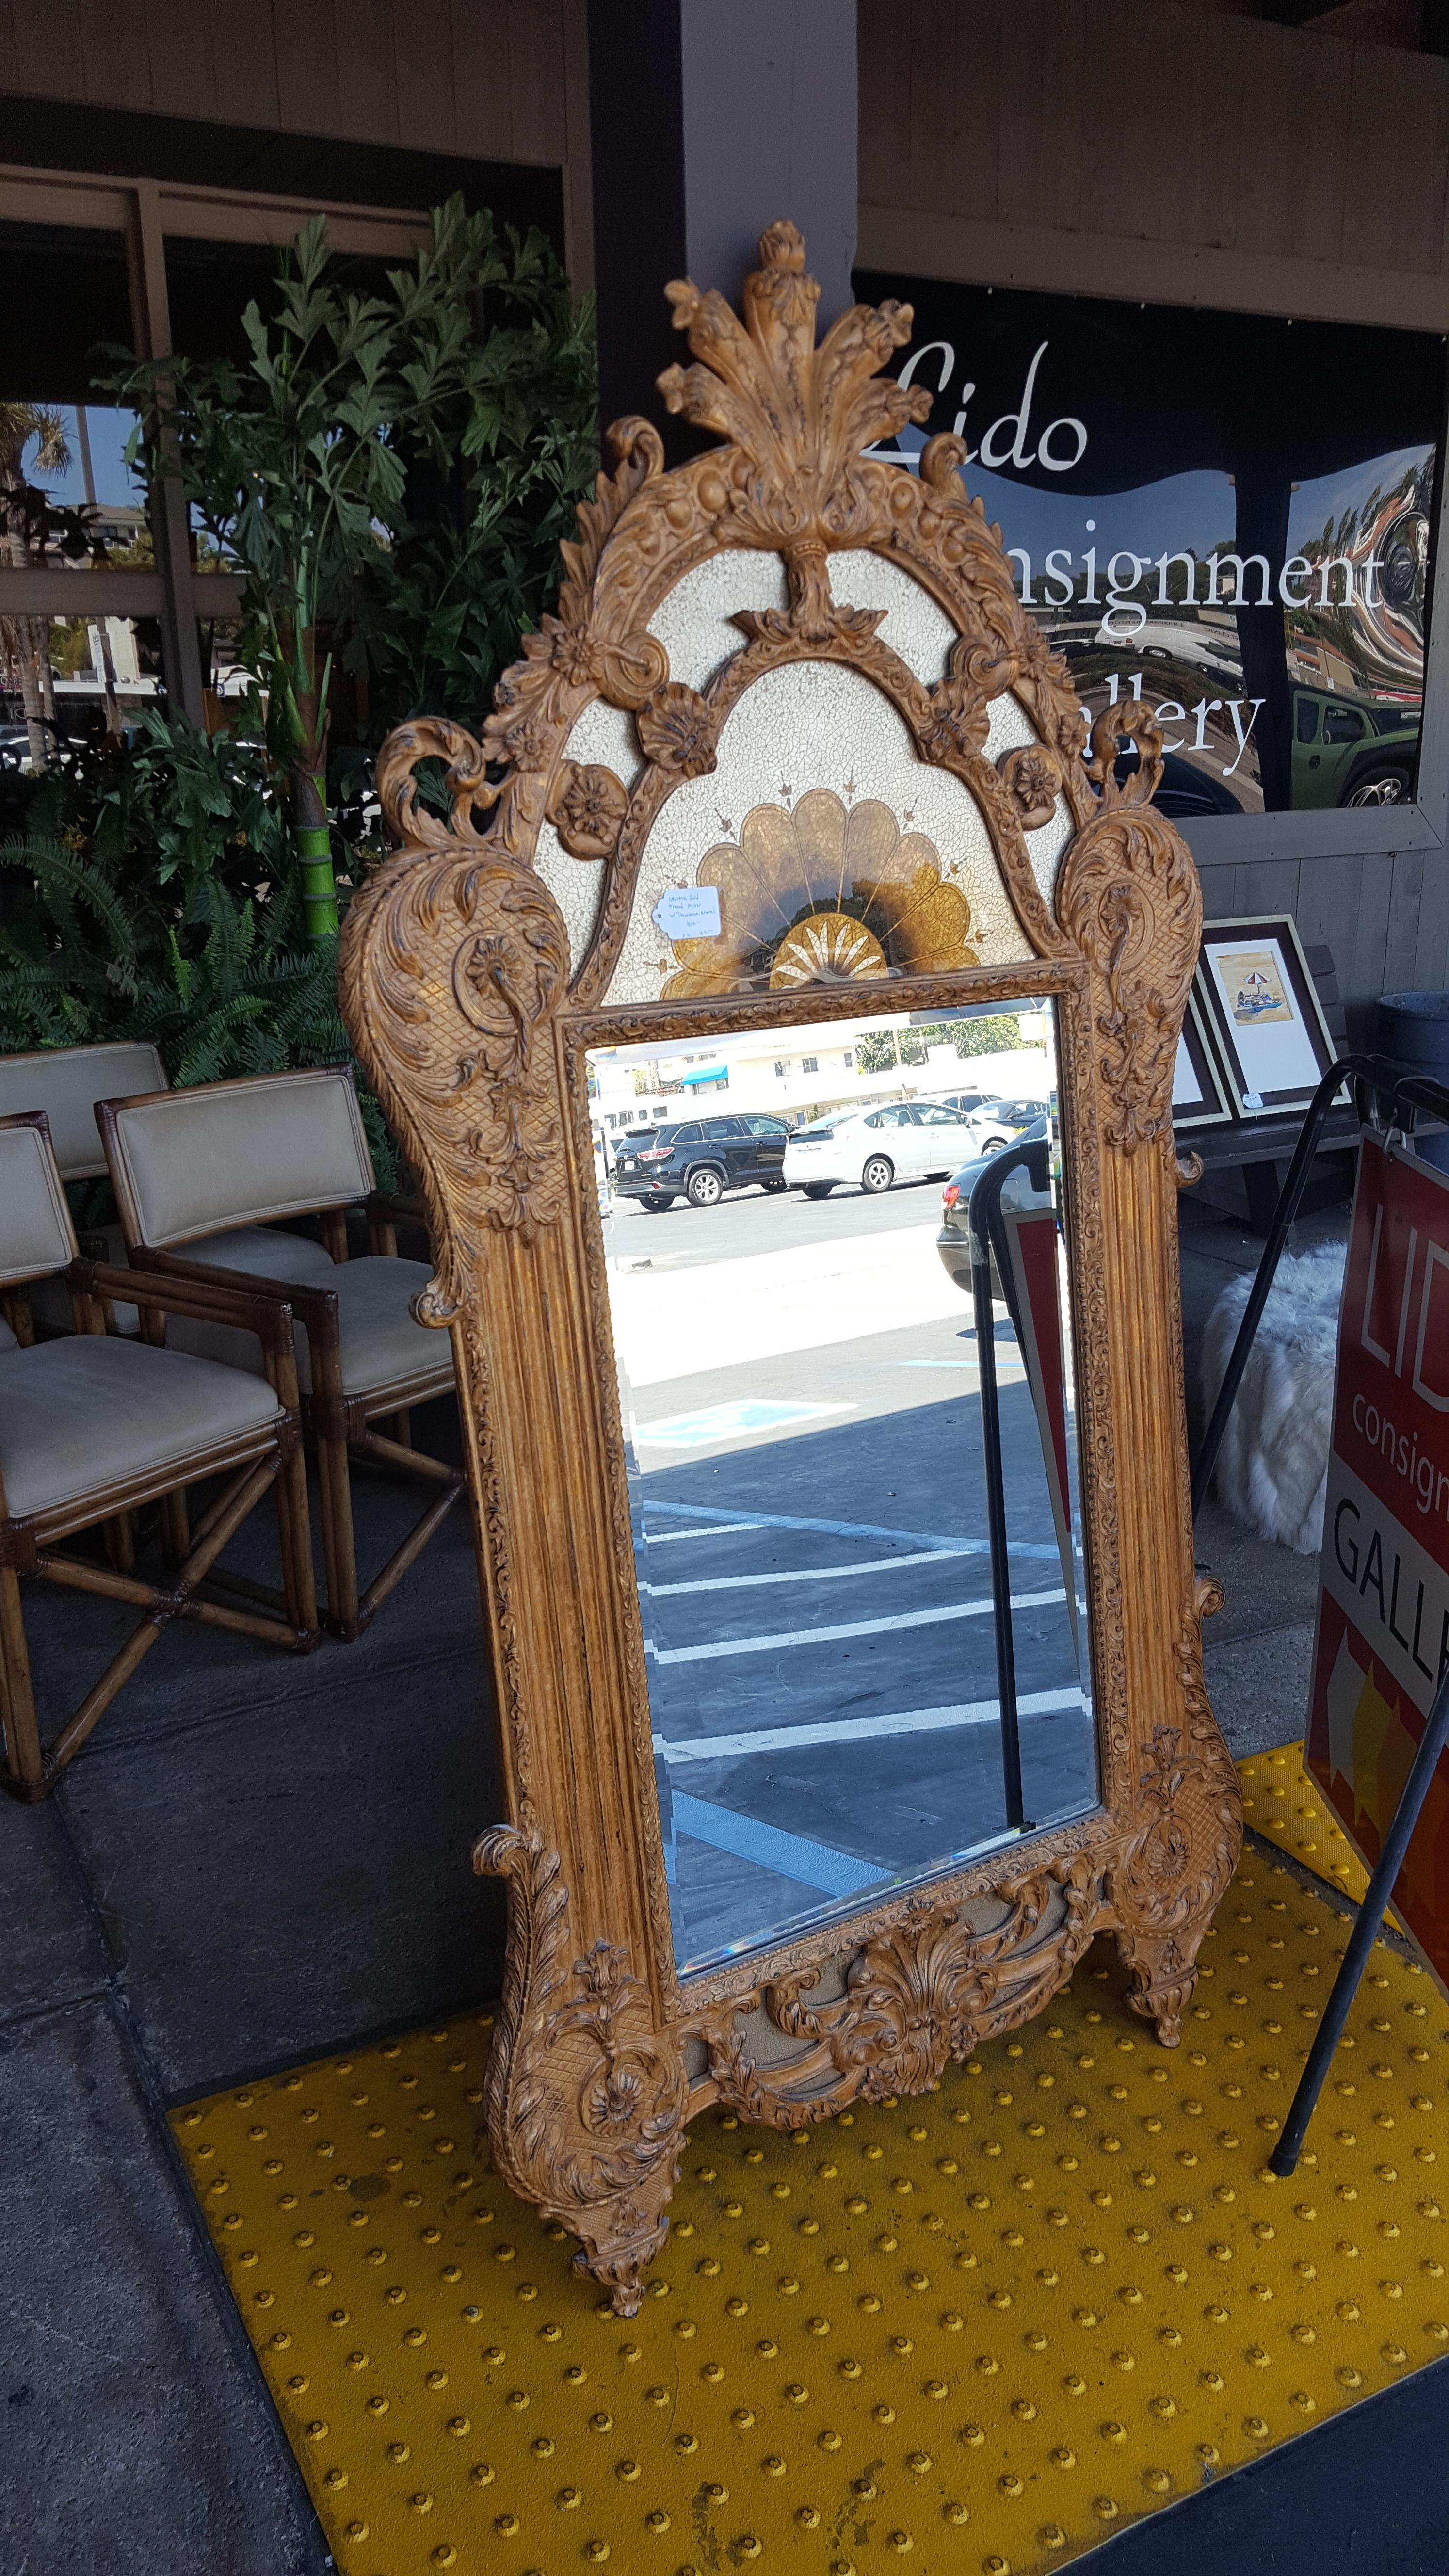 Stunning gold leaf ornate Neo Classical Artwork, Mirrors Price: $800.00